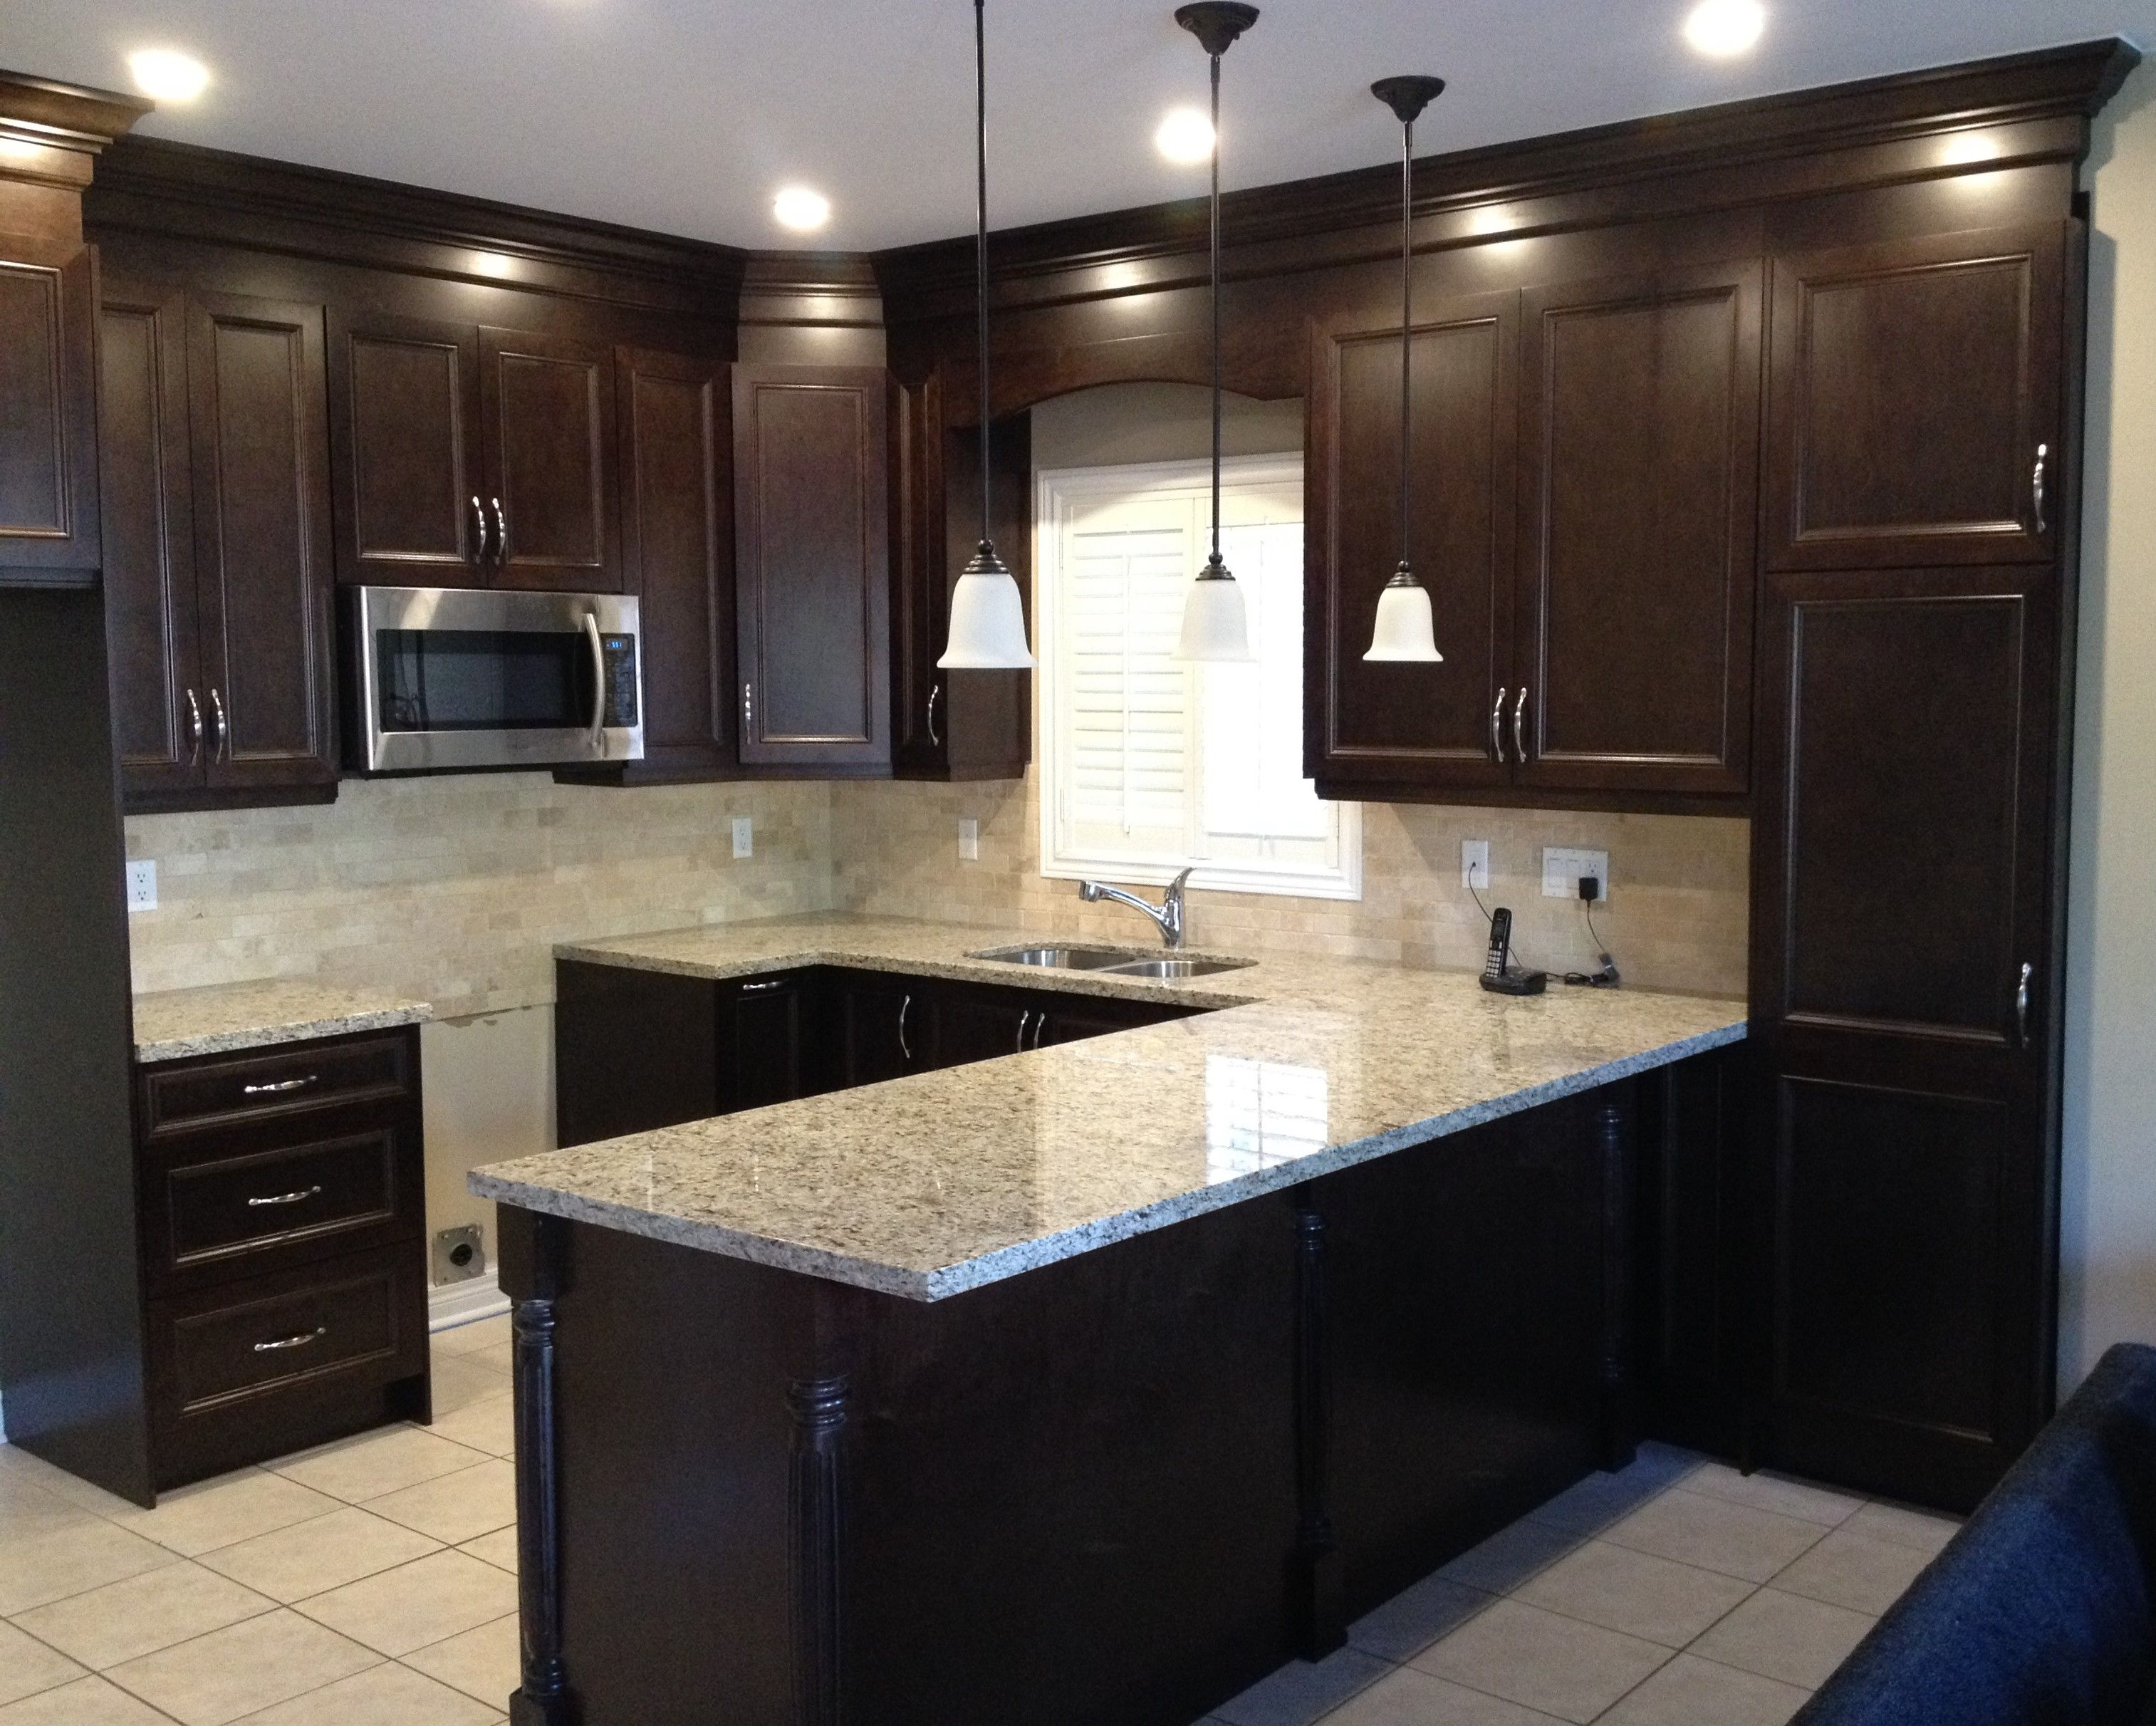 Dark Kitchen Cabinets Give An Elegant And Sophisticated Look Kitchen Remodel Small Home Kitchens Kitchen Renovation